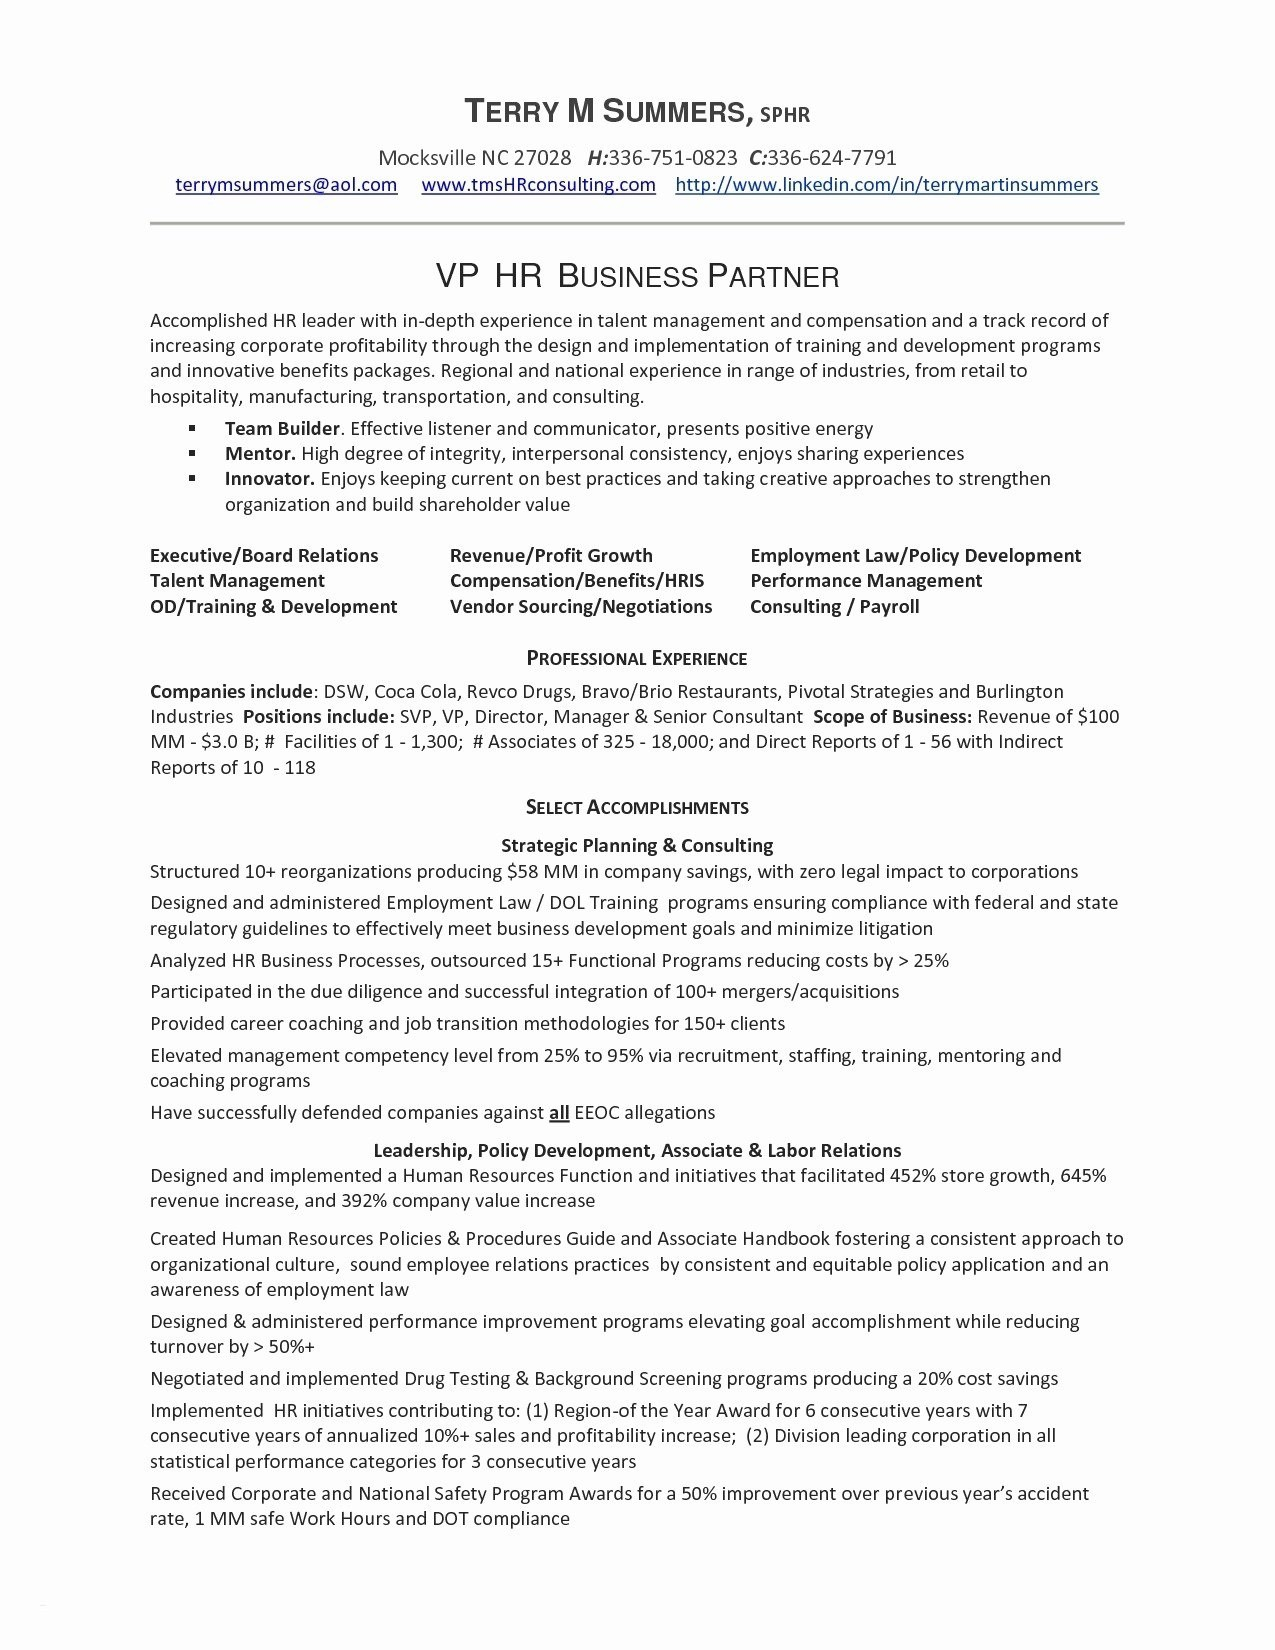 Ceo Resume Template - Finance Resume Templates Refrence Ceo Resume Sample Best Ceo Resume